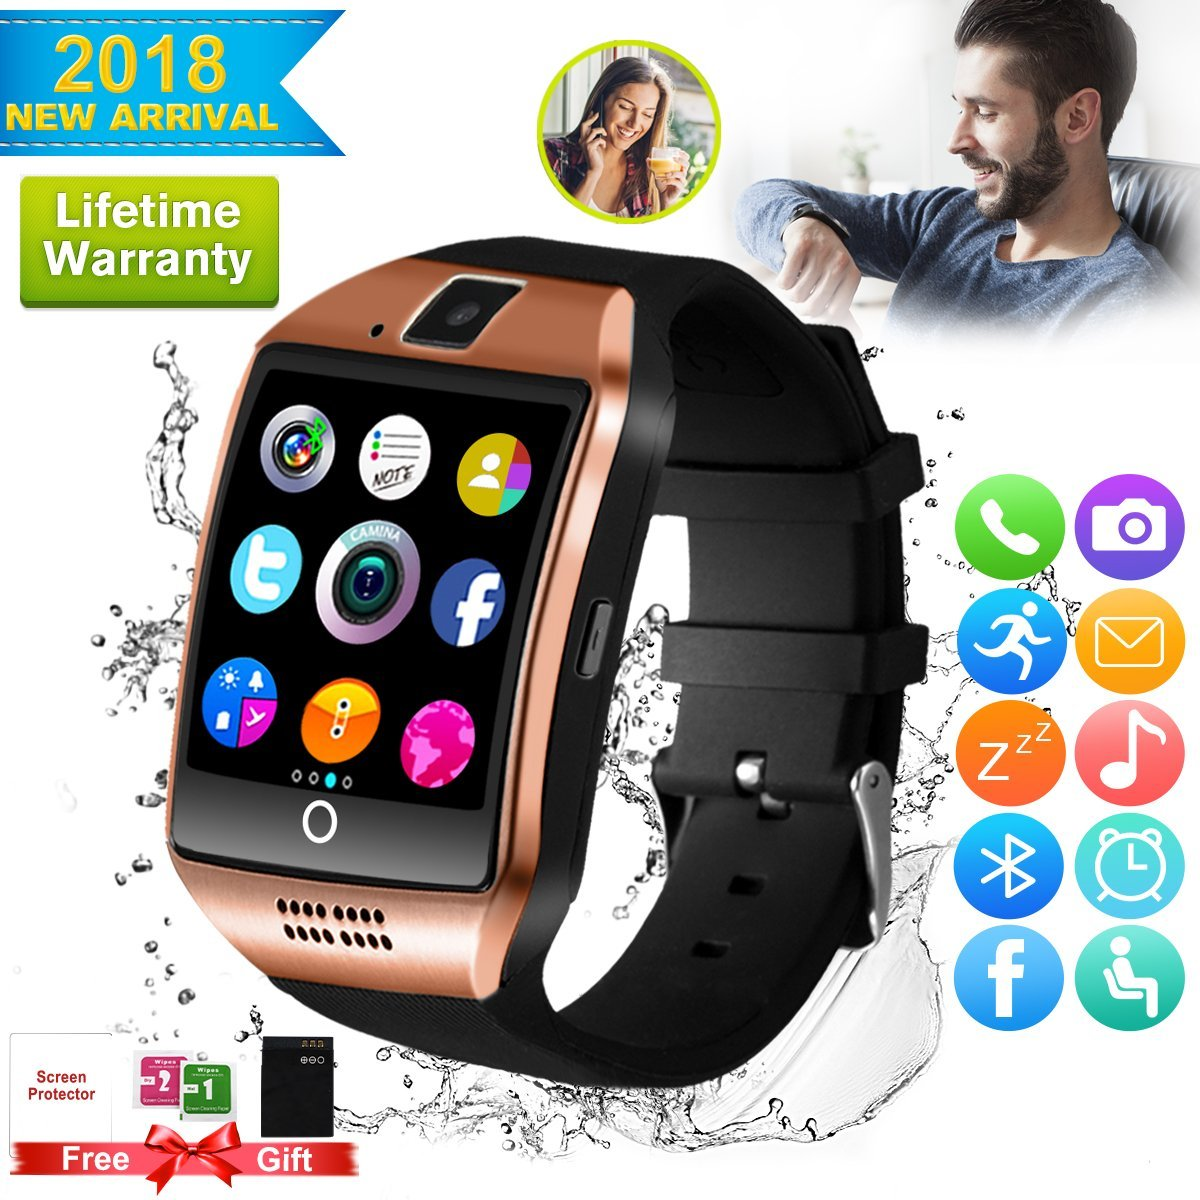 Smart watch for android phones,2018 Bluetooth smartwatch Android ,Smart Watches Touchscreen with Camera, Smart Wrist Watch Cell Phone with Sim Card Slot Compatible IOS Android for Women Man